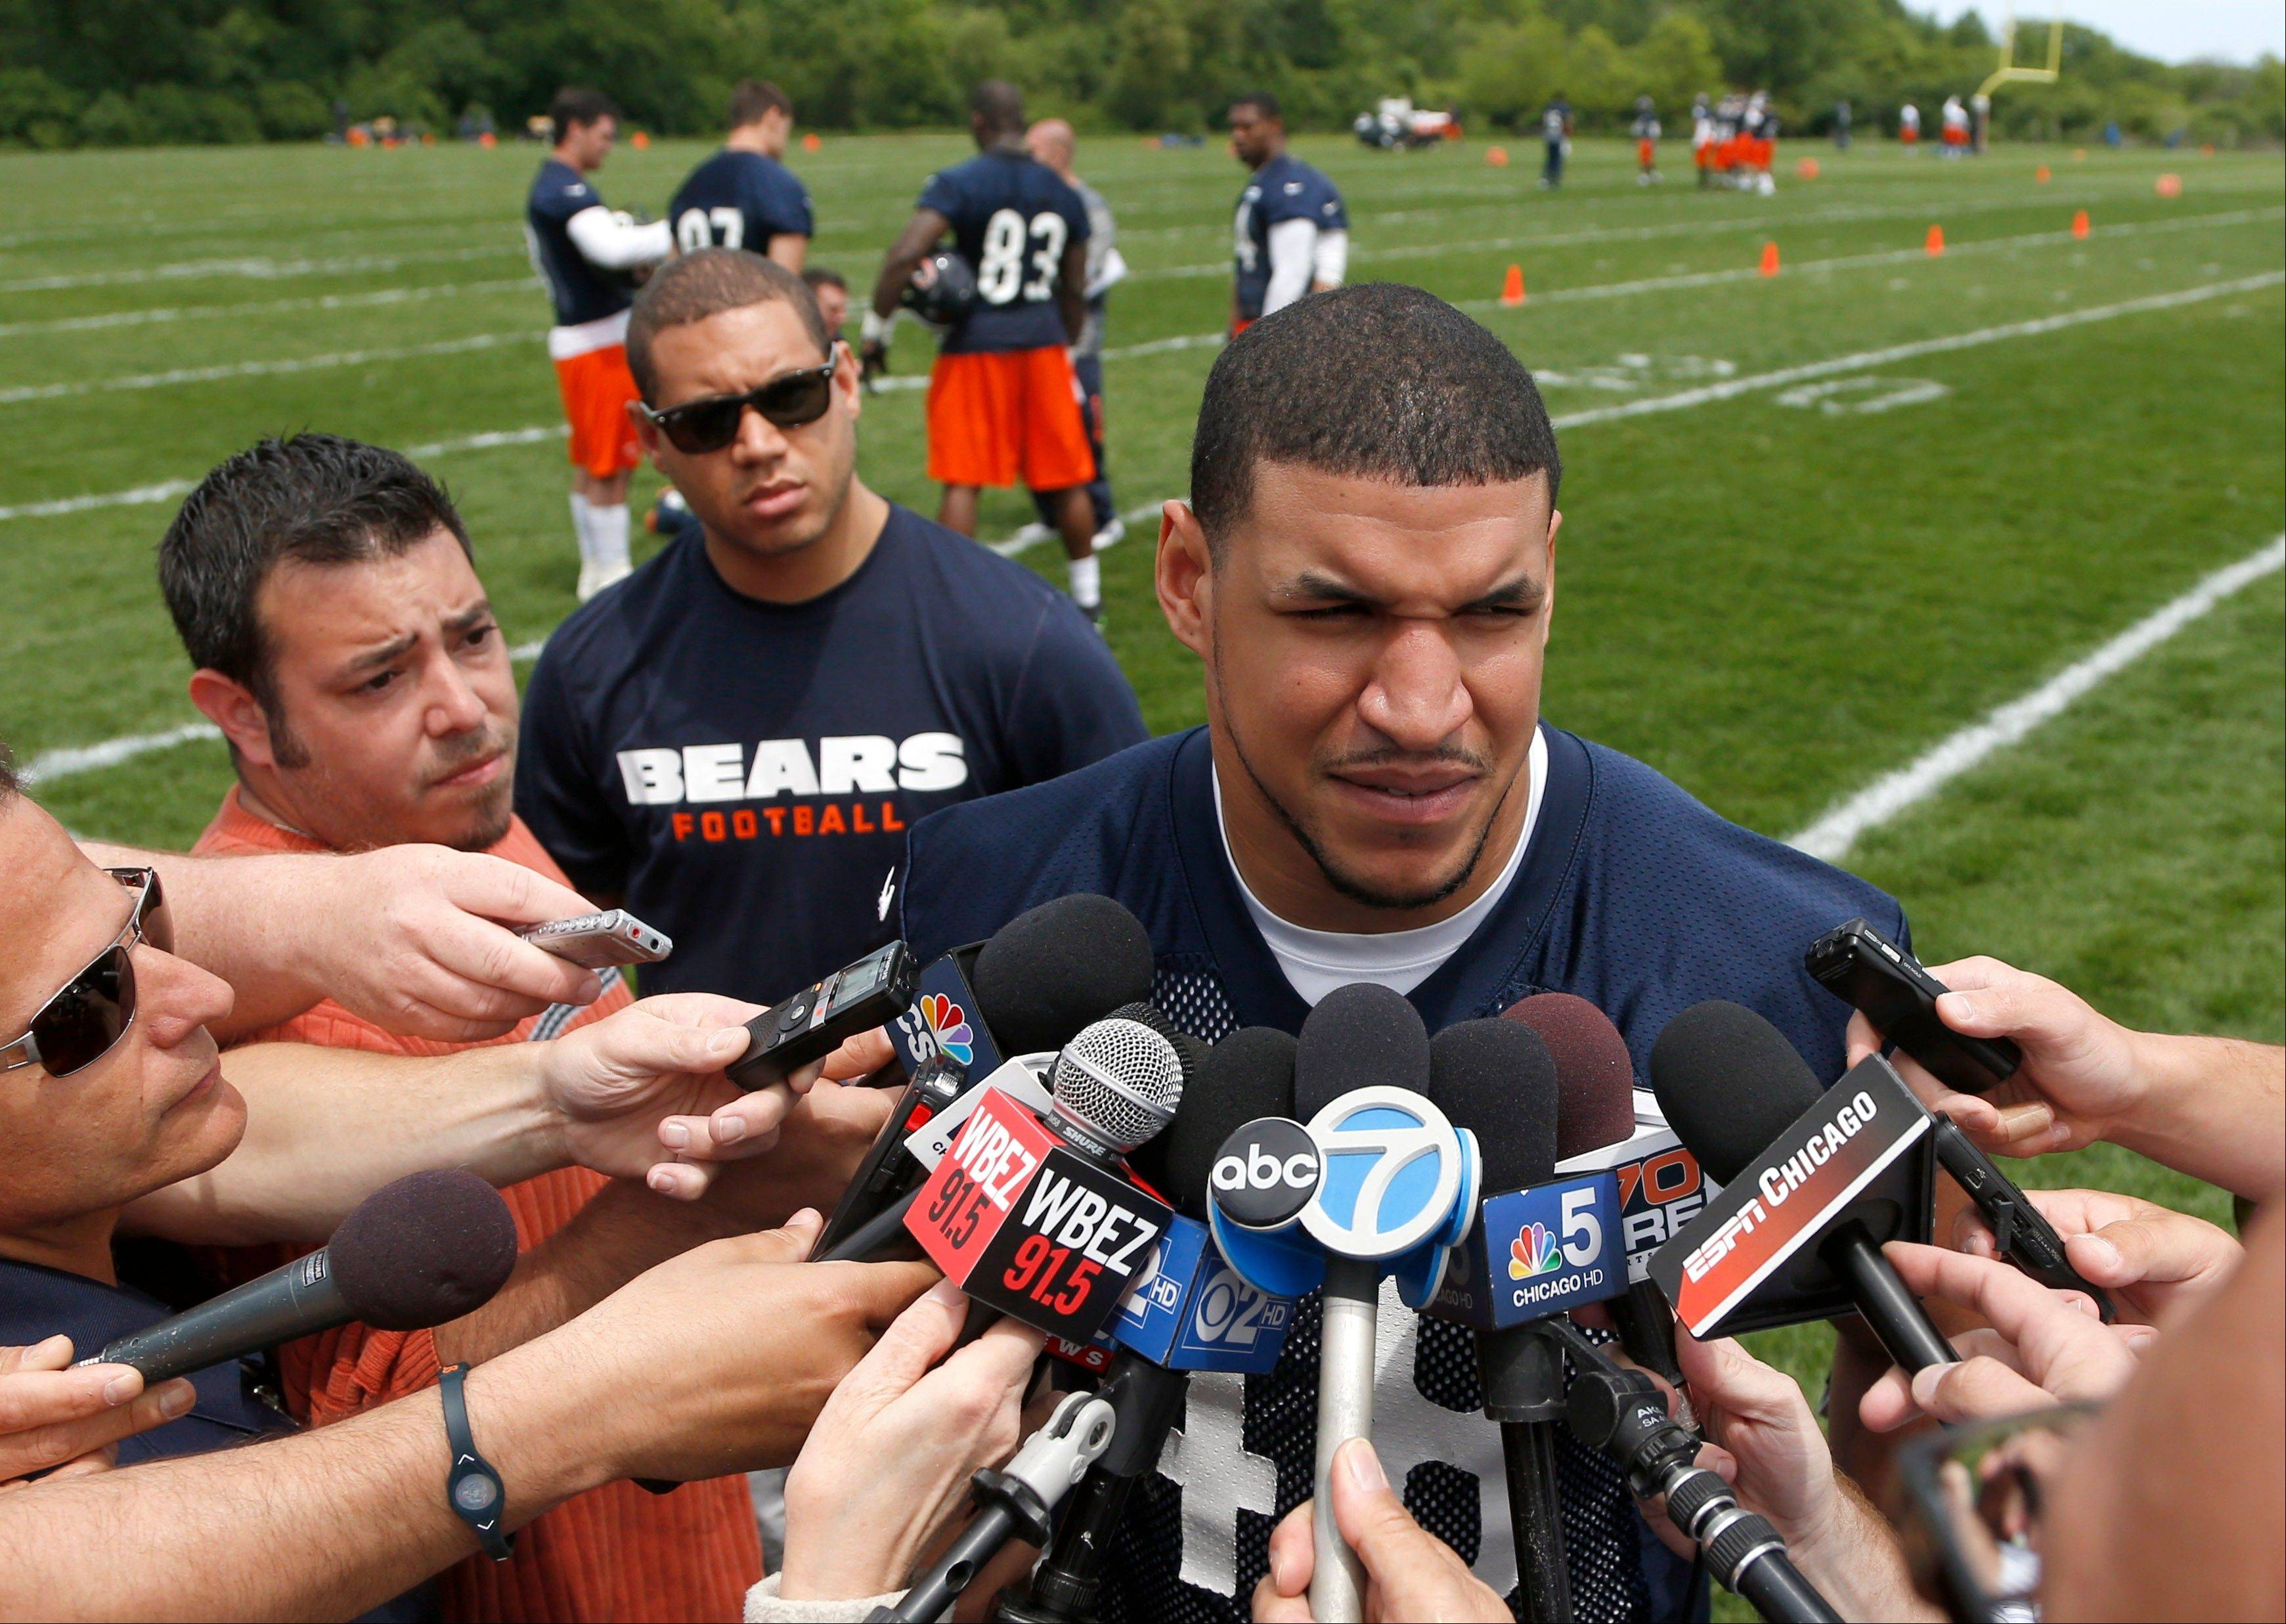 The Bears' Evan Rodriguez talks with reporters Tuesday after practice in Lake Forest. Authorities say Rodriguez was ticketed for driving under the influence, speeding and improper lane usage and was ticketed early Friday on Interstate 90, near downtown Chicago. The incident was the second encounter the 24-year-old Rodriguez has had with police this year. In March, Rodriguez was charged with disorderly intoxication and resisting an officer in Miami. Those charges were eventually dropped.